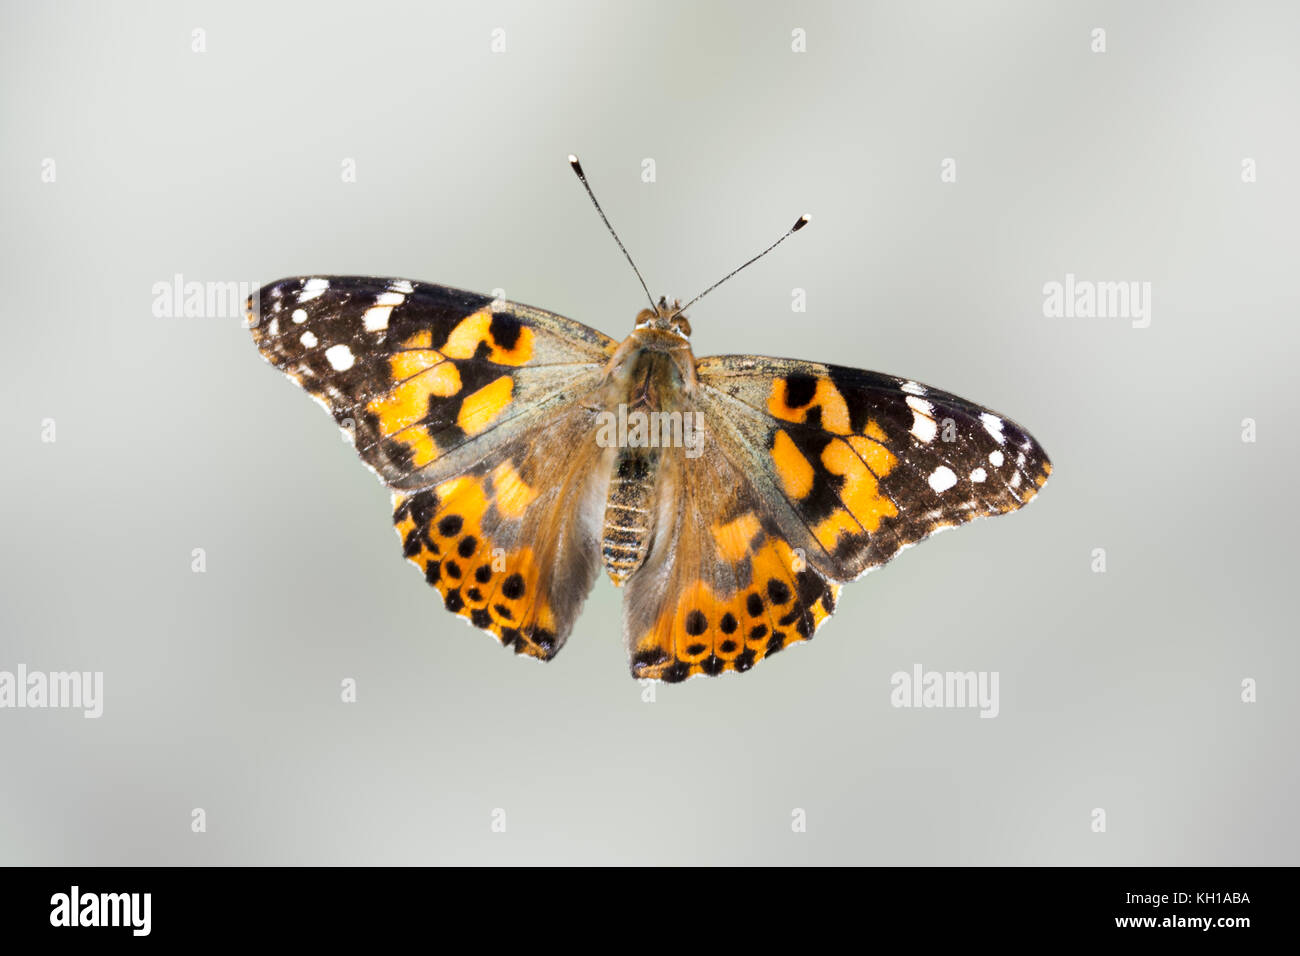 Close-up of Painted Lady butterfly (cardui vanessa) against a blurred grey-green background Stock Photo